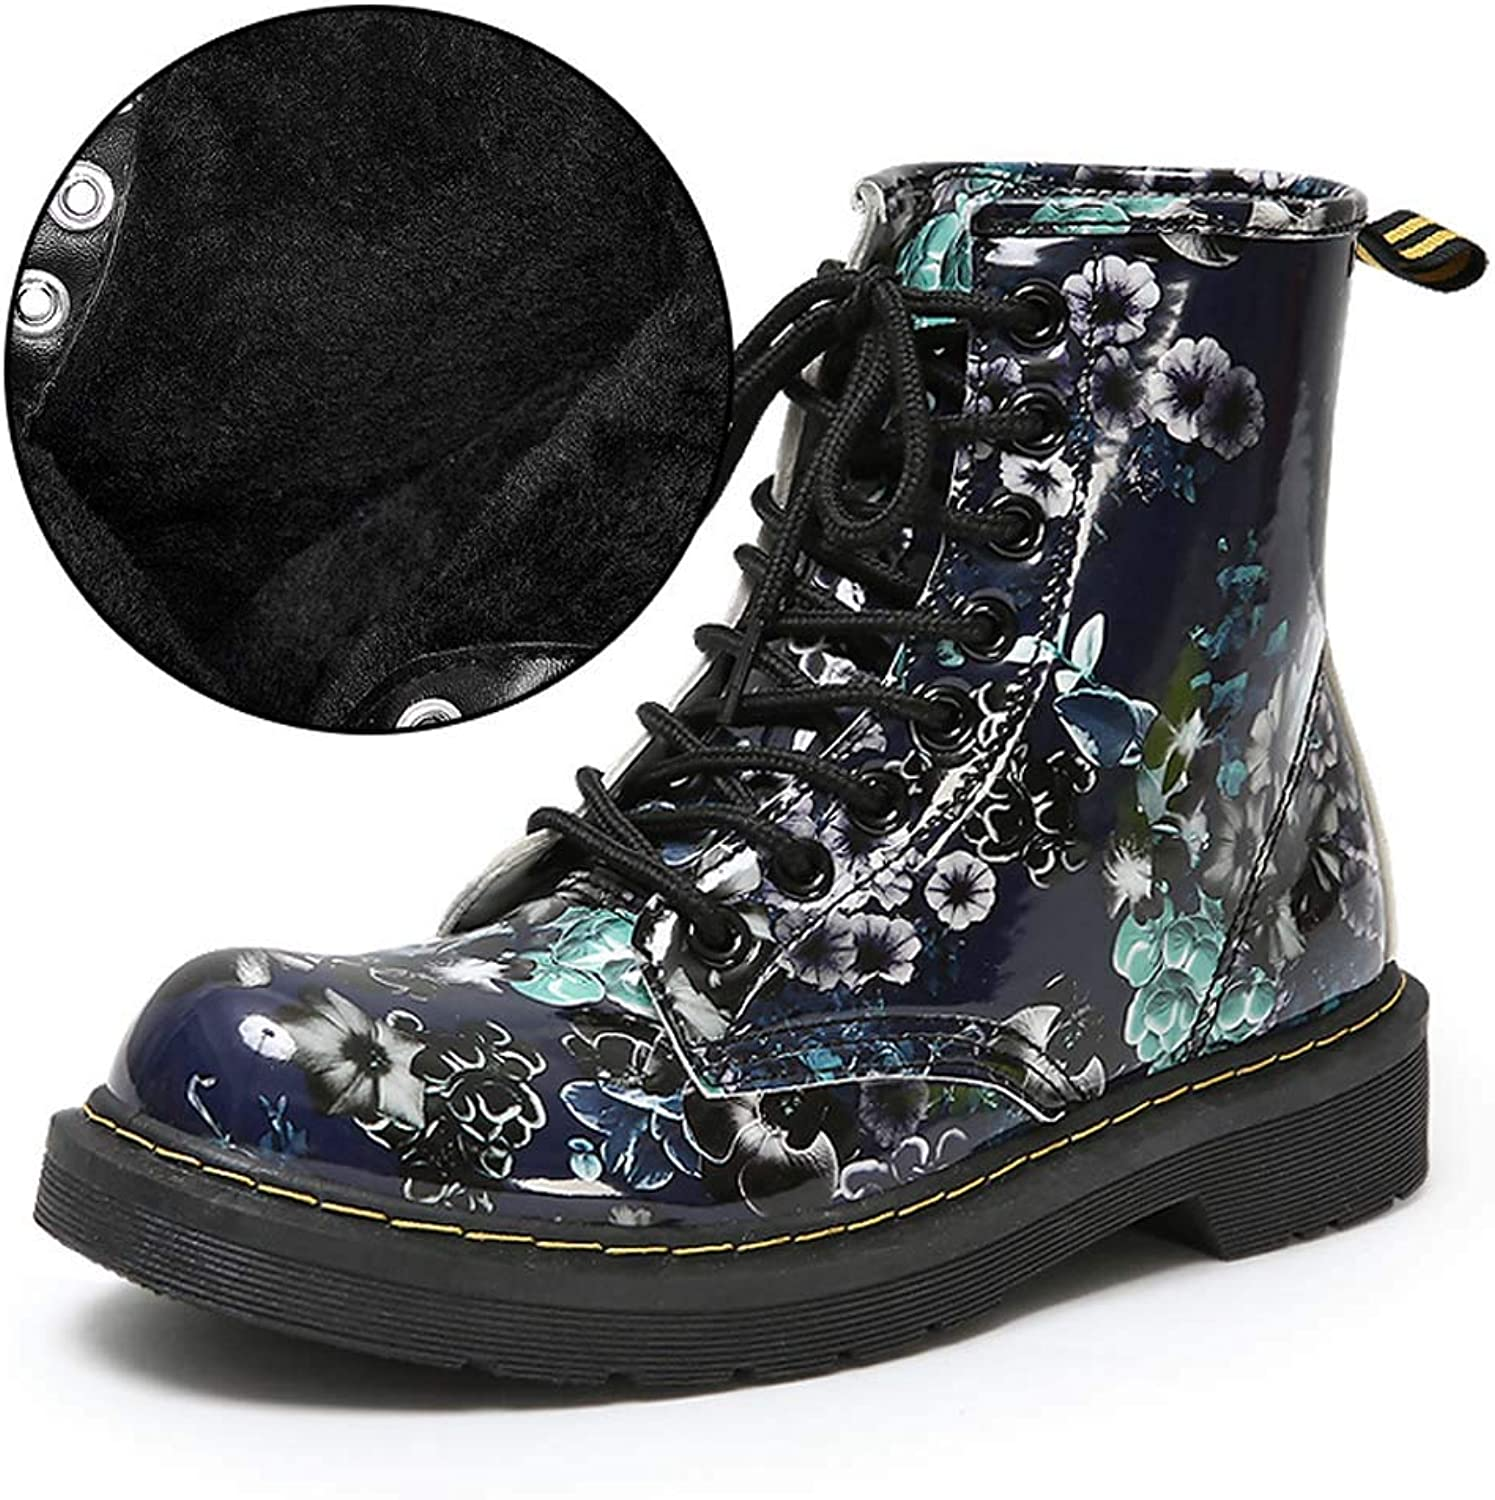 Womens Martin Boots Winter Fur Lined Casual Lace Up Warm Ankle Boots,Crystal bluee